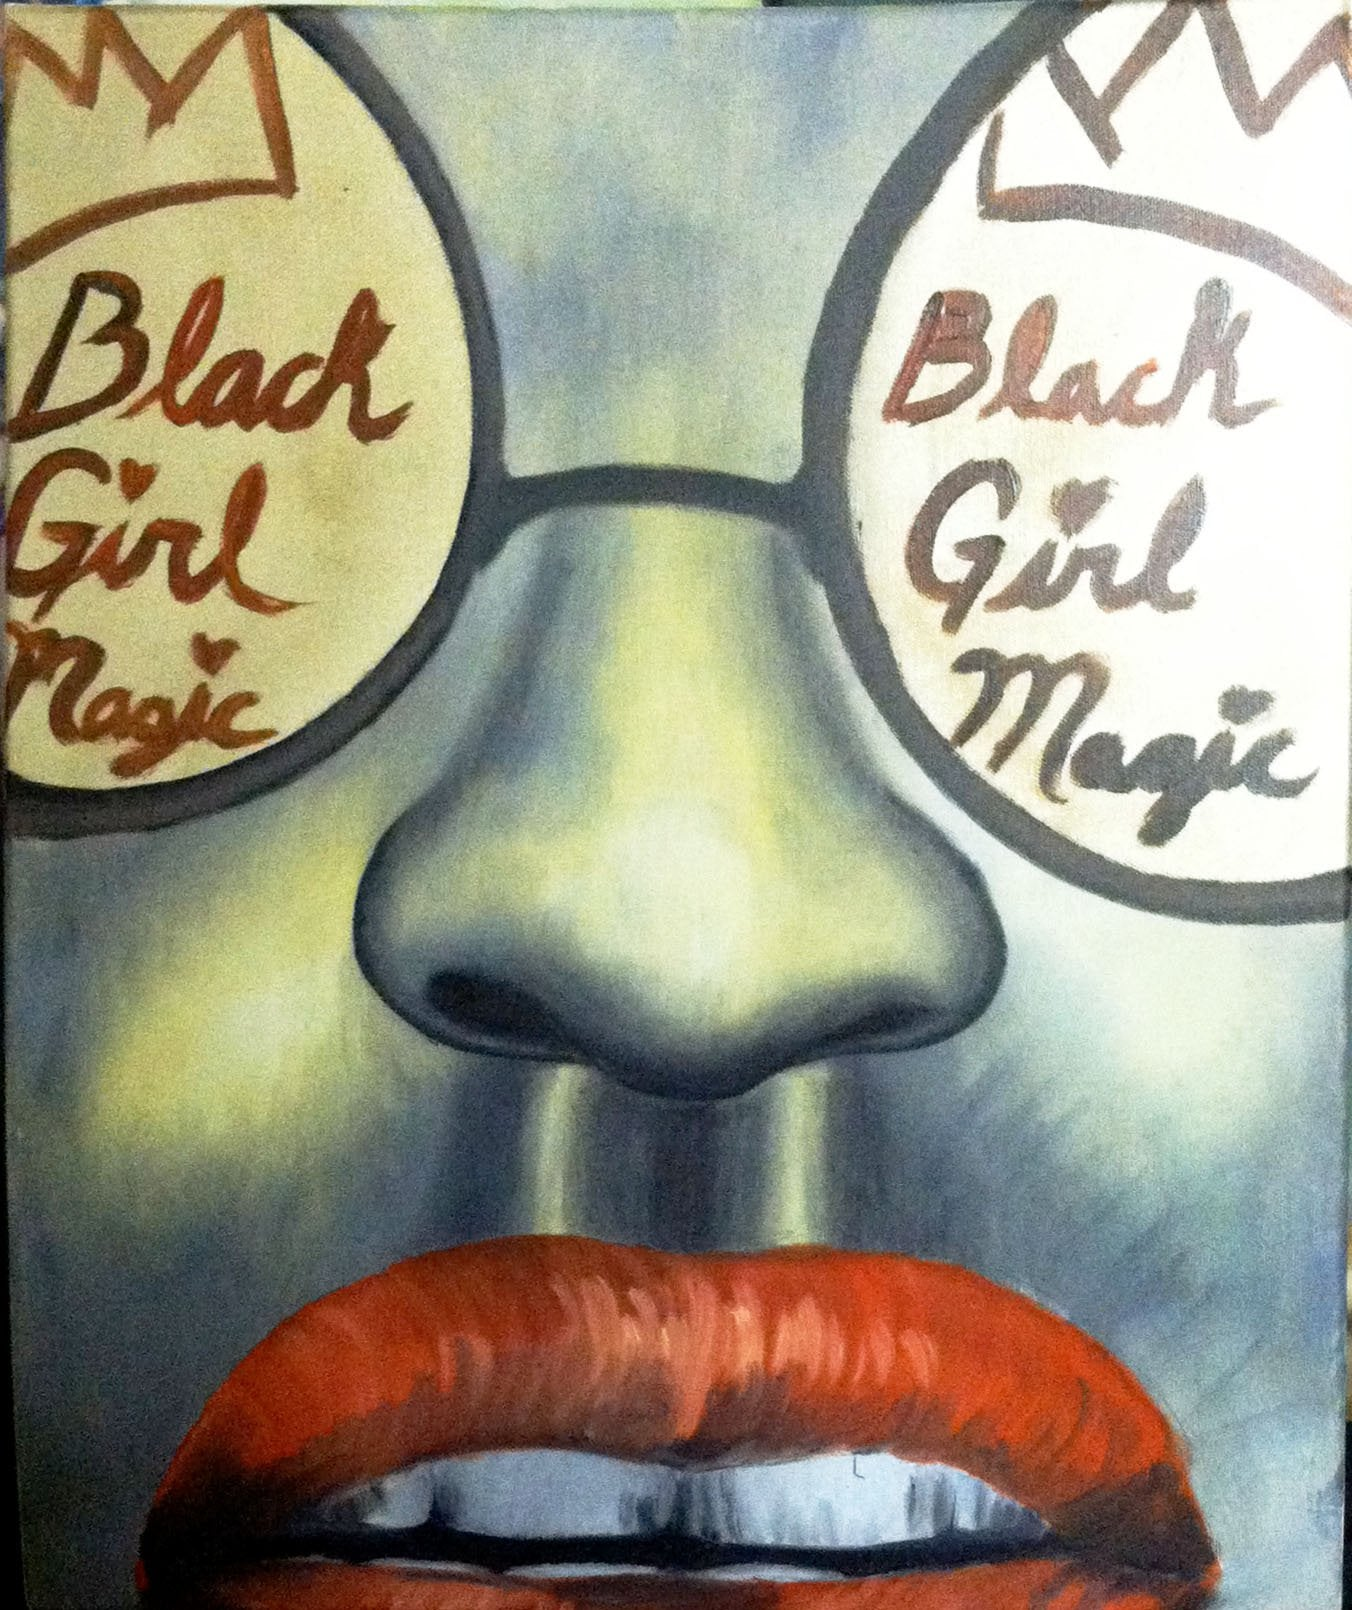 Black Girl Magic - PolkTheArtist